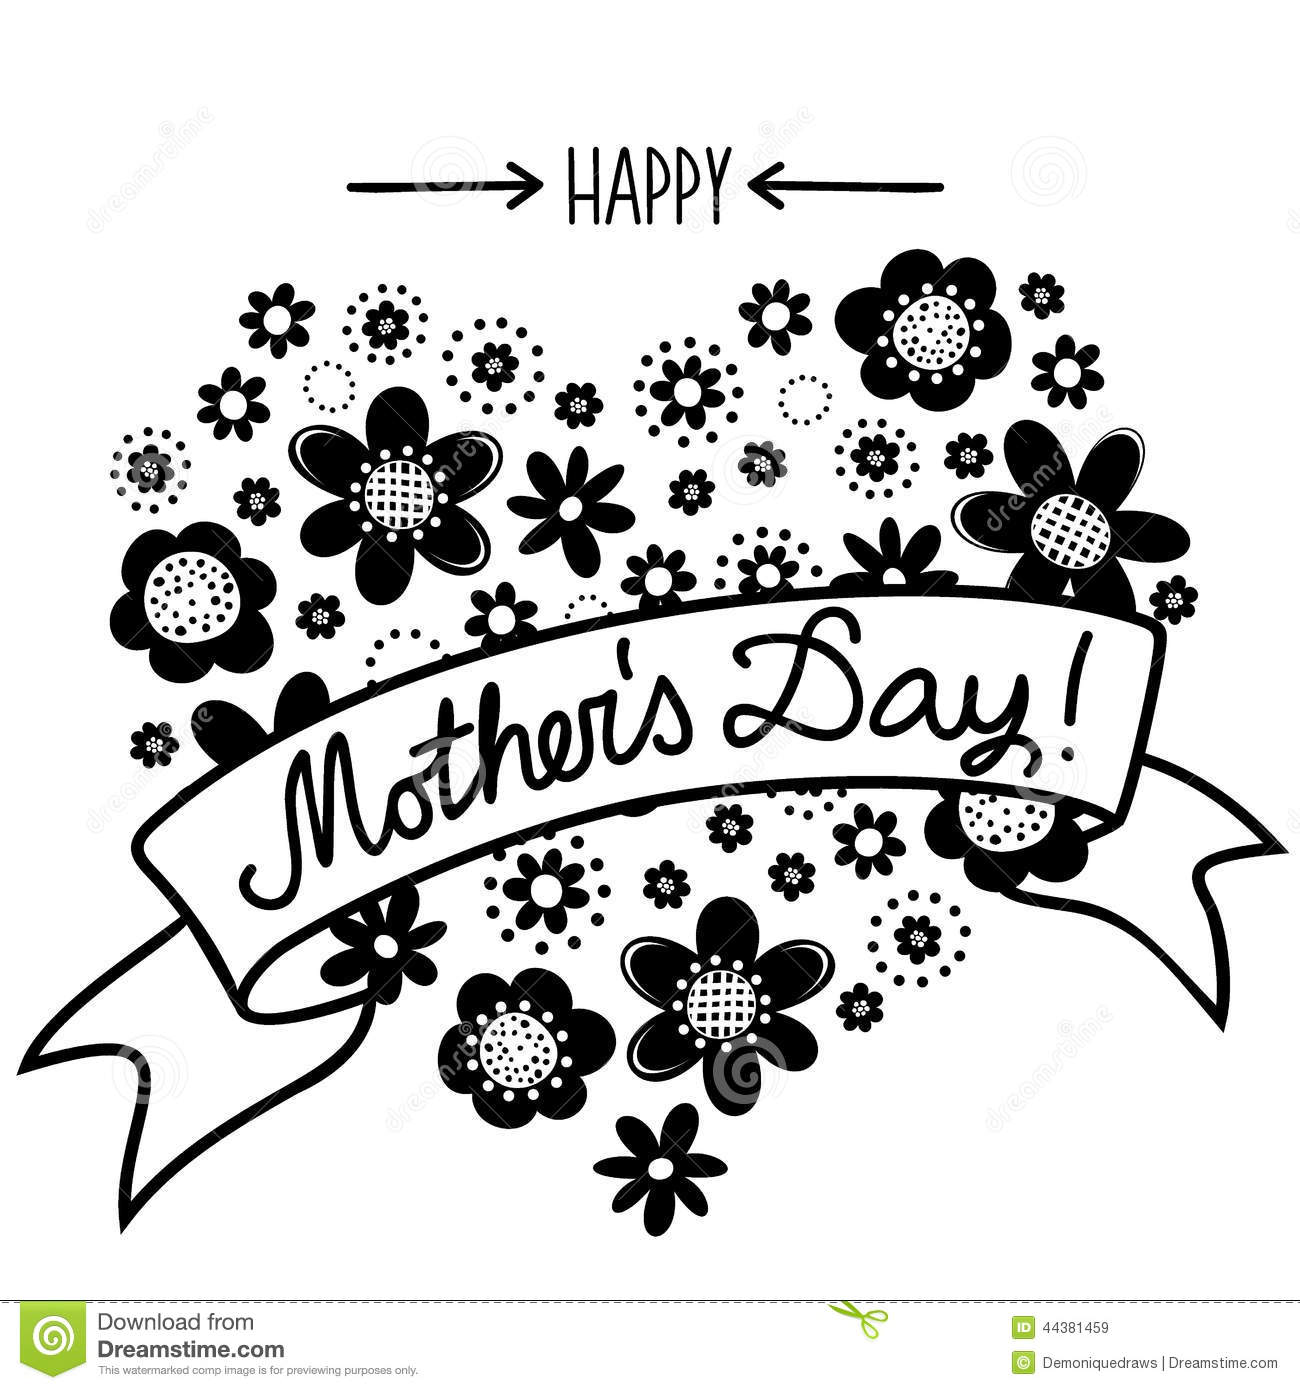 Happy Mothers Day Clipart Black And White.